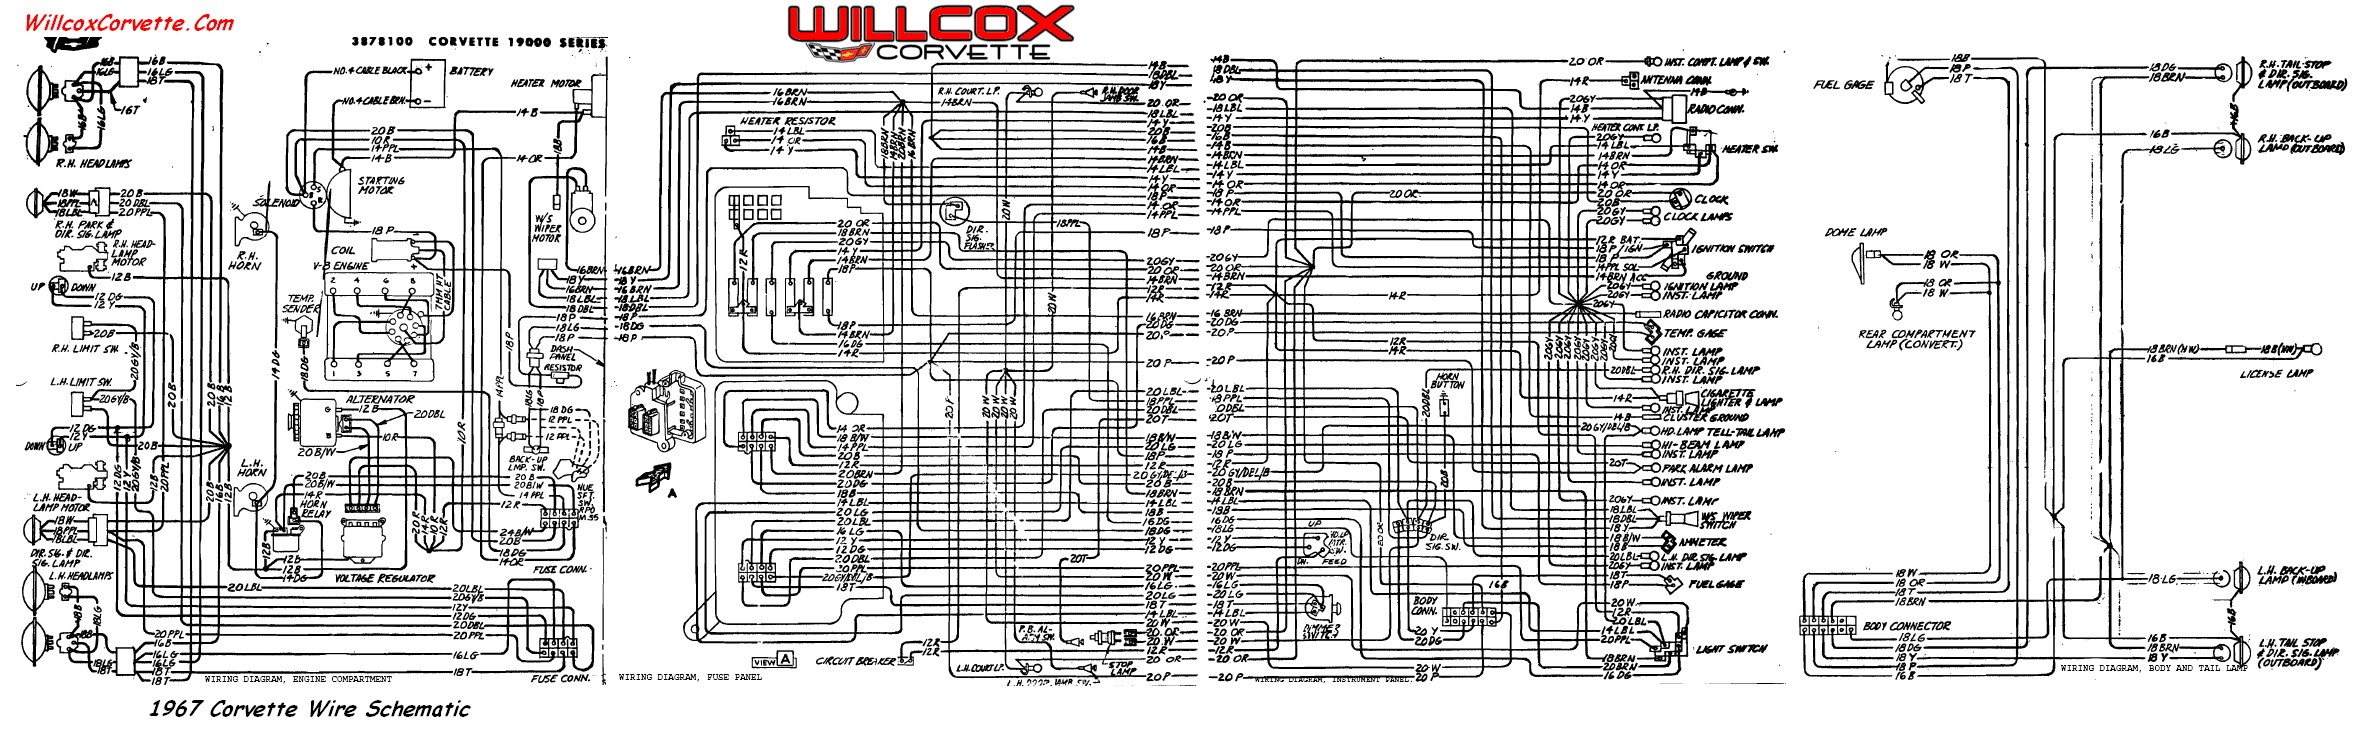 79 wiring diagram corvette parts wire center u2022 rh ayseesra co 1977 corvette wiring diagram 1977 corvette starter wiring diagram